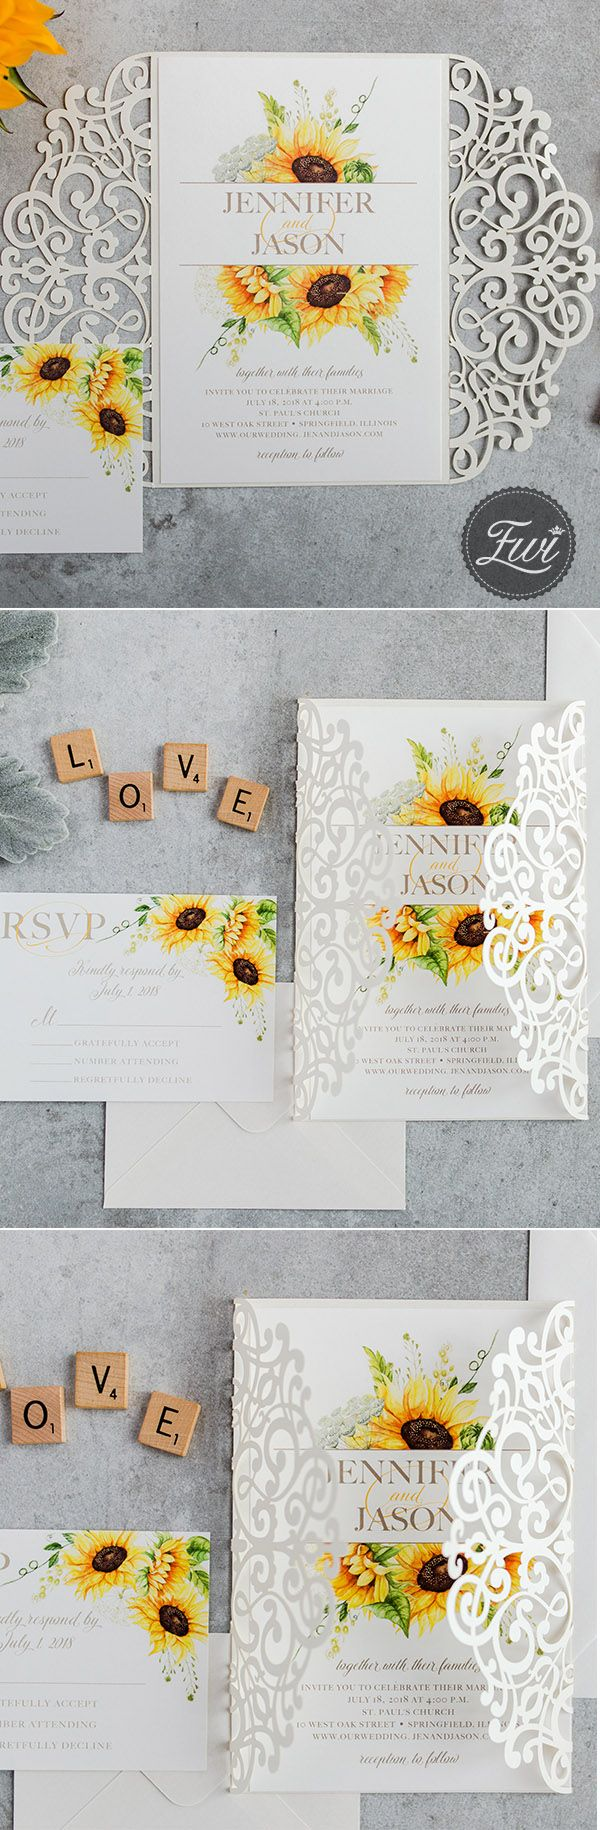 Elegant watercolor yellow sunflower laser cut wedding invitations ...